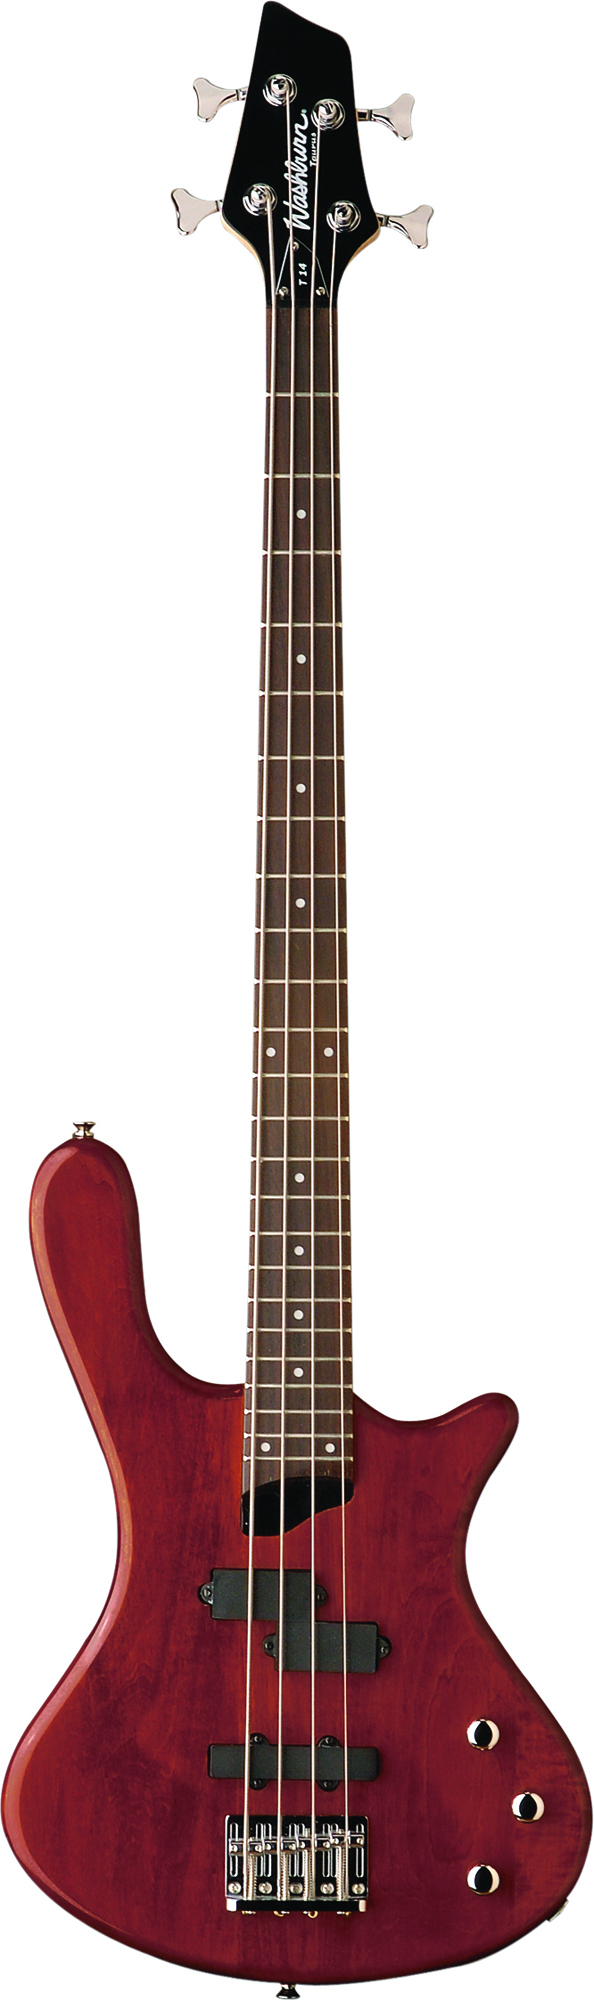 Washburn T14CG Taurus Series Electric Bass Guitar with Tuners and Cognac Finish